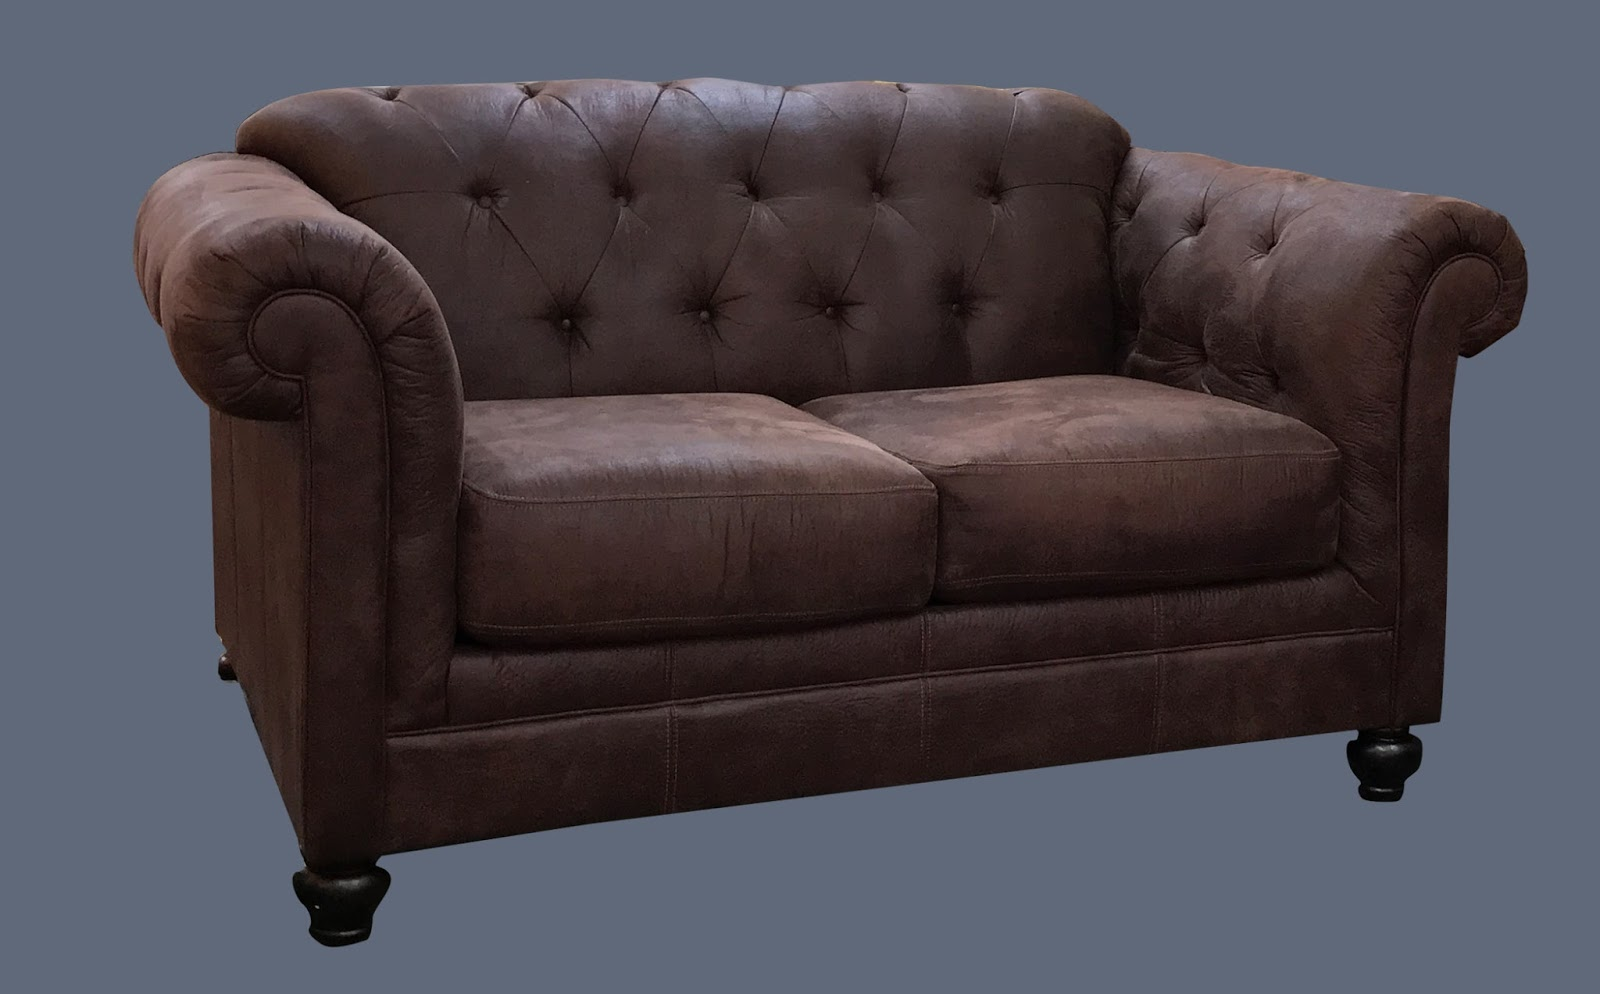 Uhuru Furniture Collectibles Tufted Microfiber Distressed Leather Style Loveseat 225 225